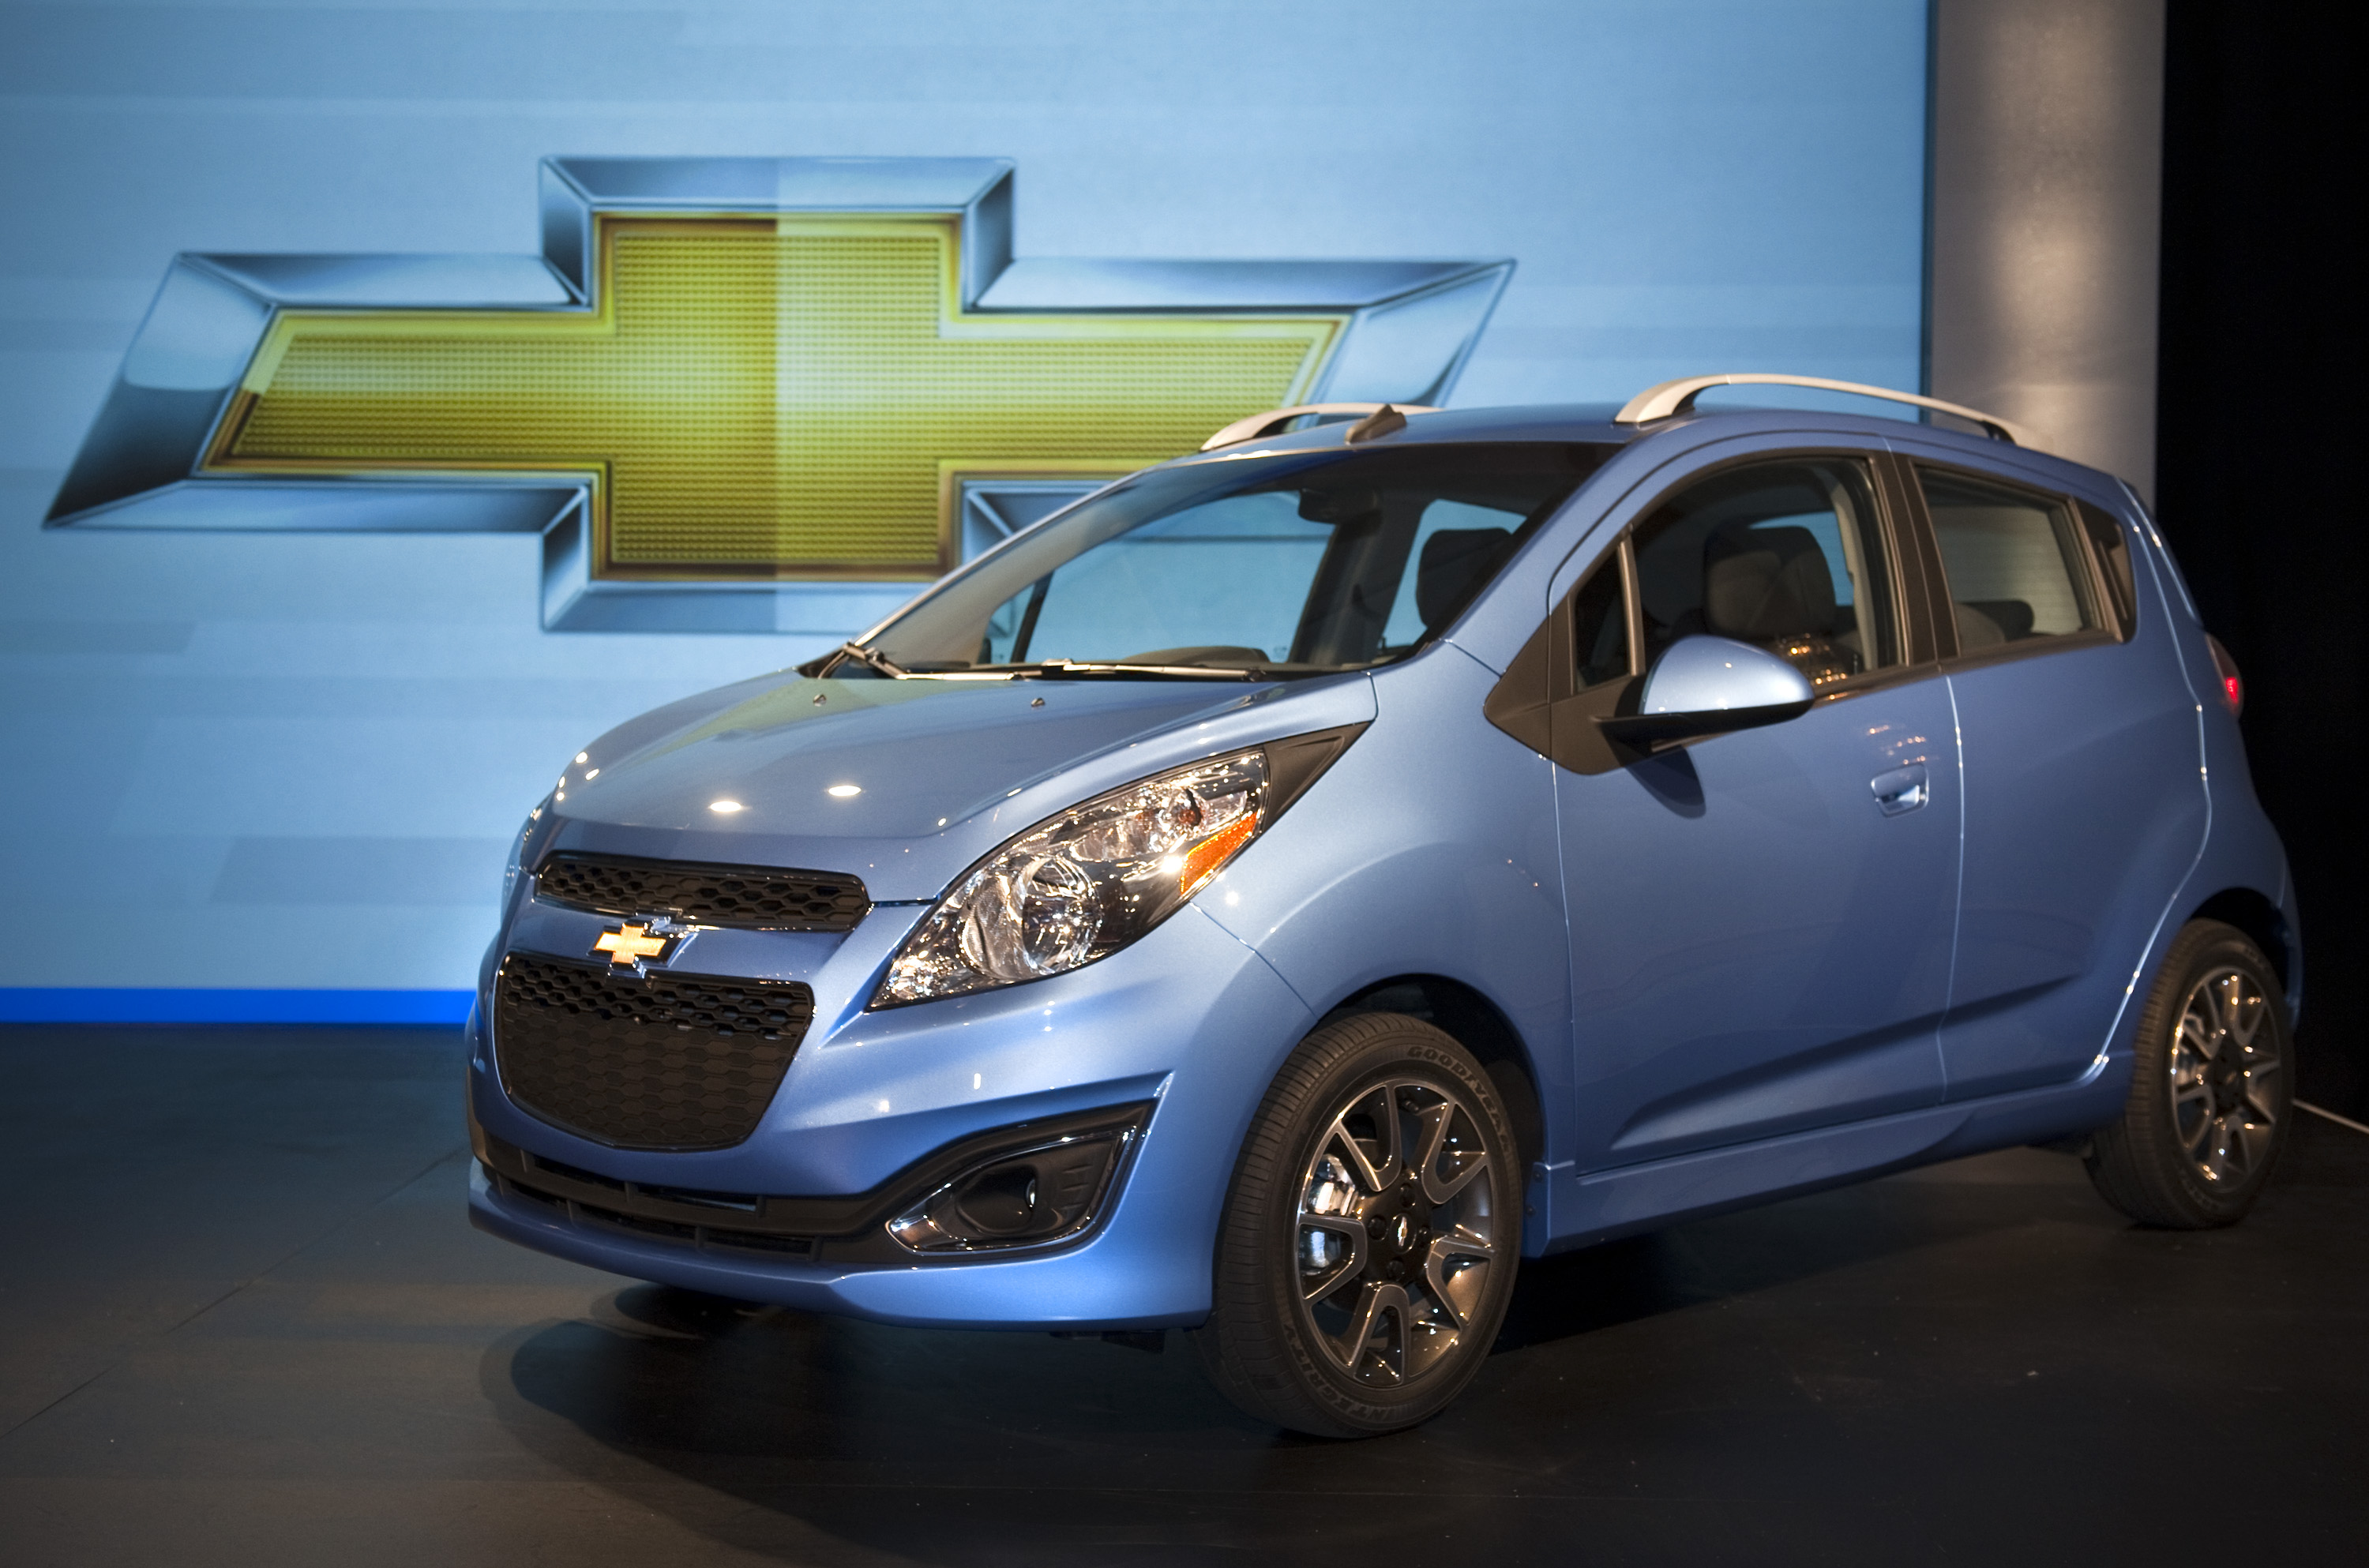 Gm Officially Confirms 2013 Chevy Spark Minicar Spark Ev